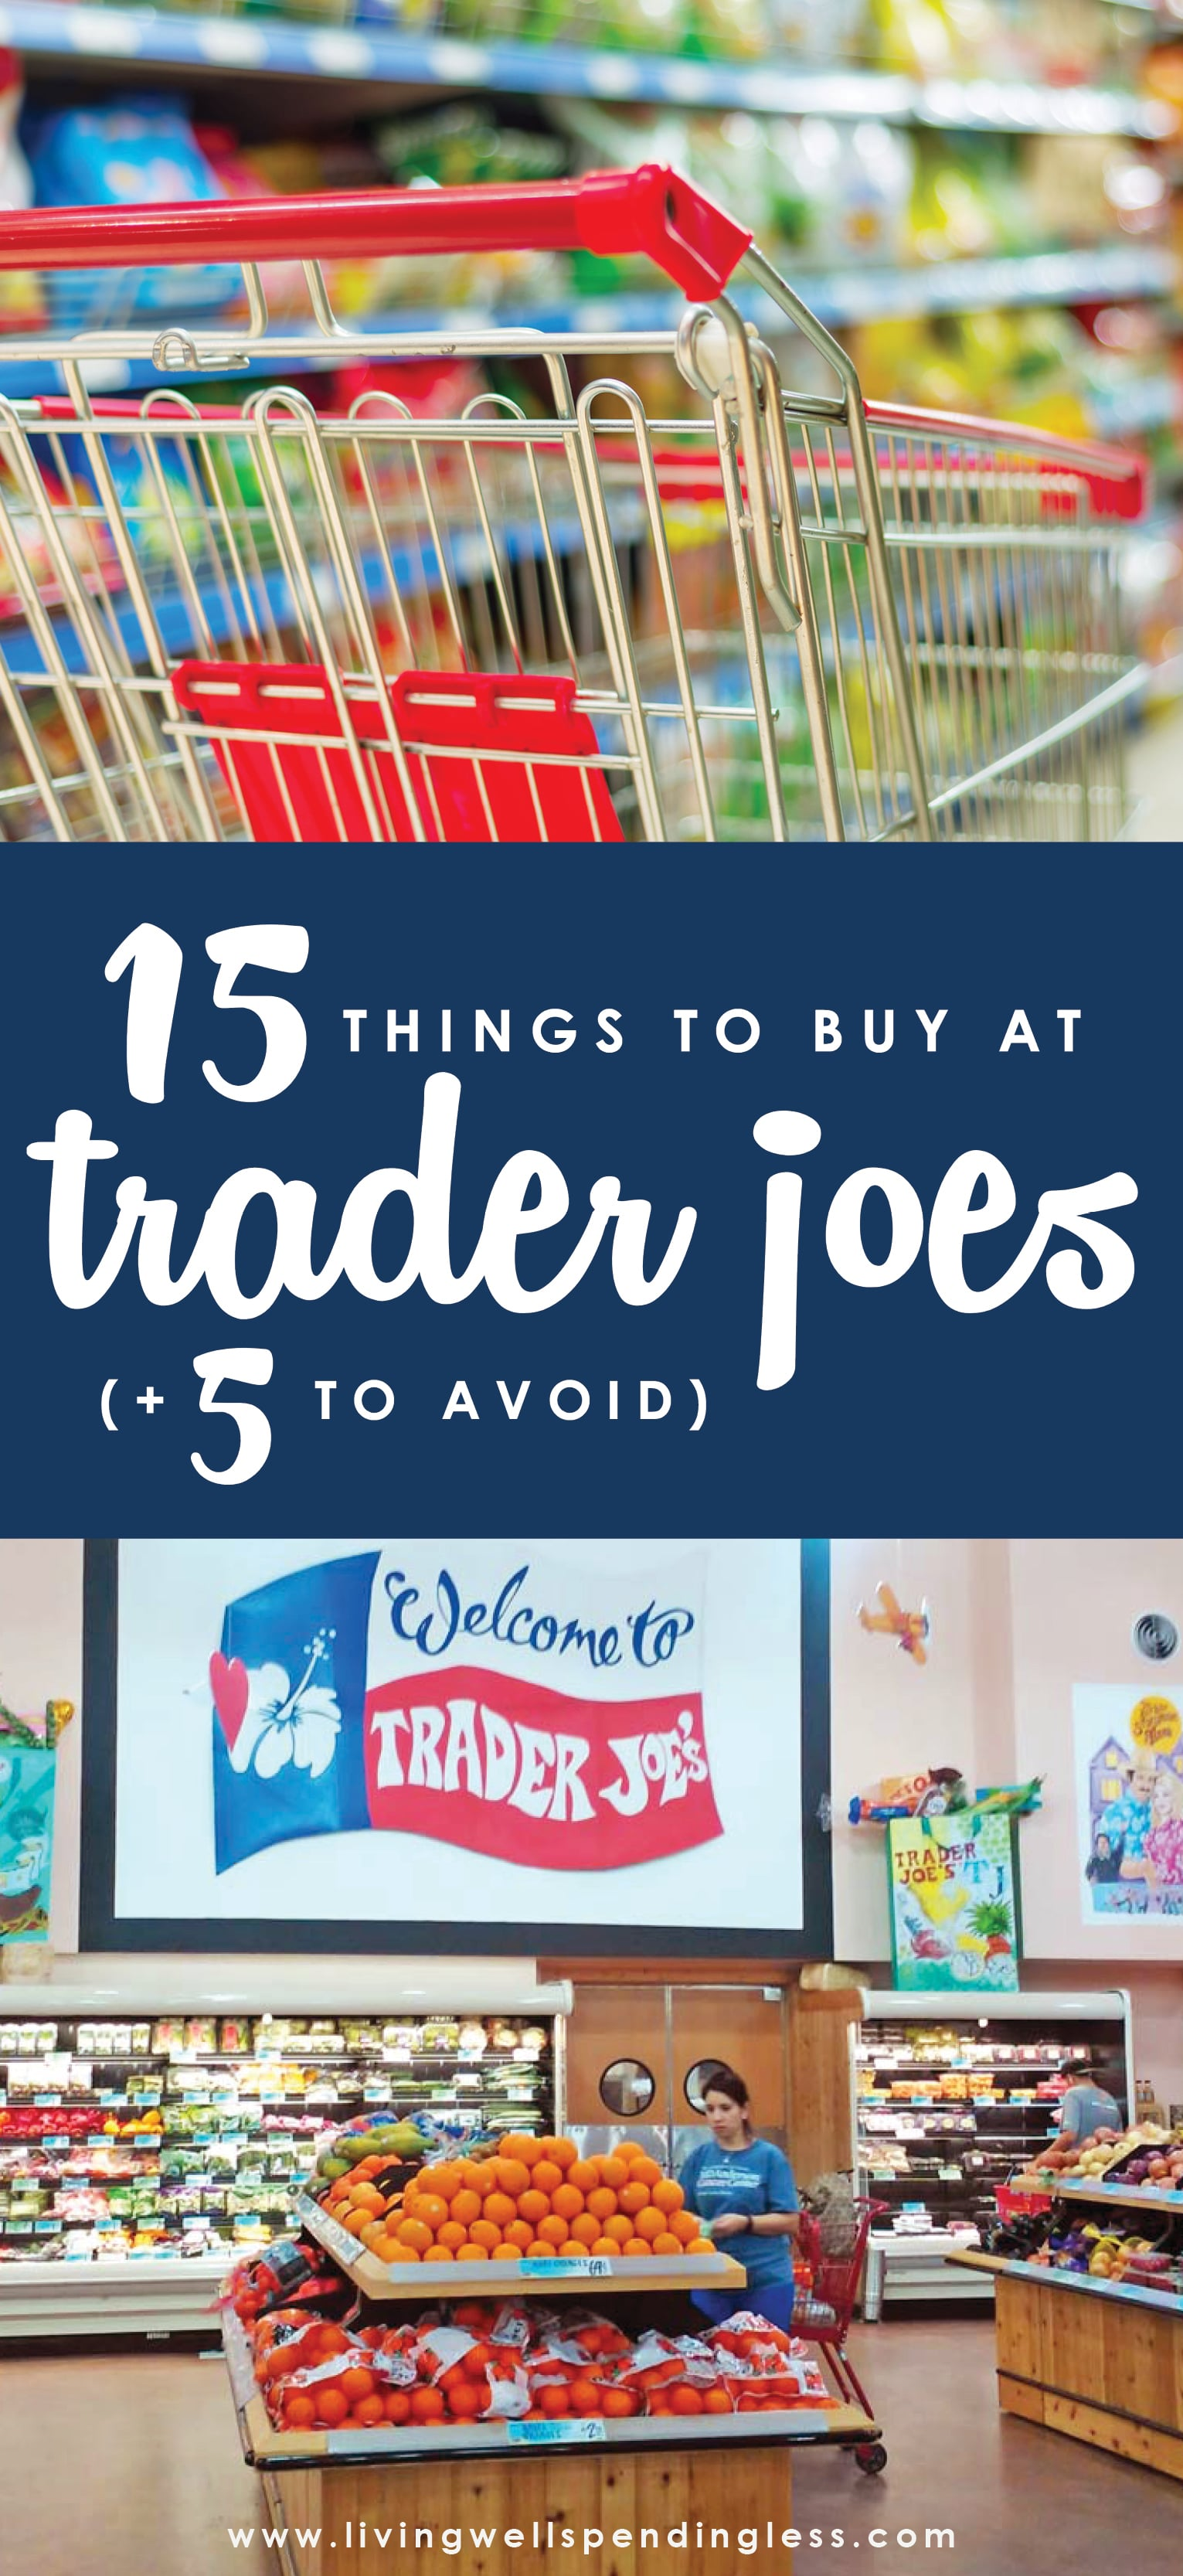 Wondering what to buy at Trader Joe's? Here's the inside scoop on the best things to buy when you shop your neighborhood TJs (and a few items that are better deals elsewhere). Save money with these smart and delicious Trader Joe's deals.  Trader Joe's Buying Tips   Things to Buy Trader Joe's   Products to Avoid Trader Joe's   Trader Joe's   Cookie Butter   Kale Sprouts   Vegetarian Freezer Meals   No Organic Meats   Grocery Tips